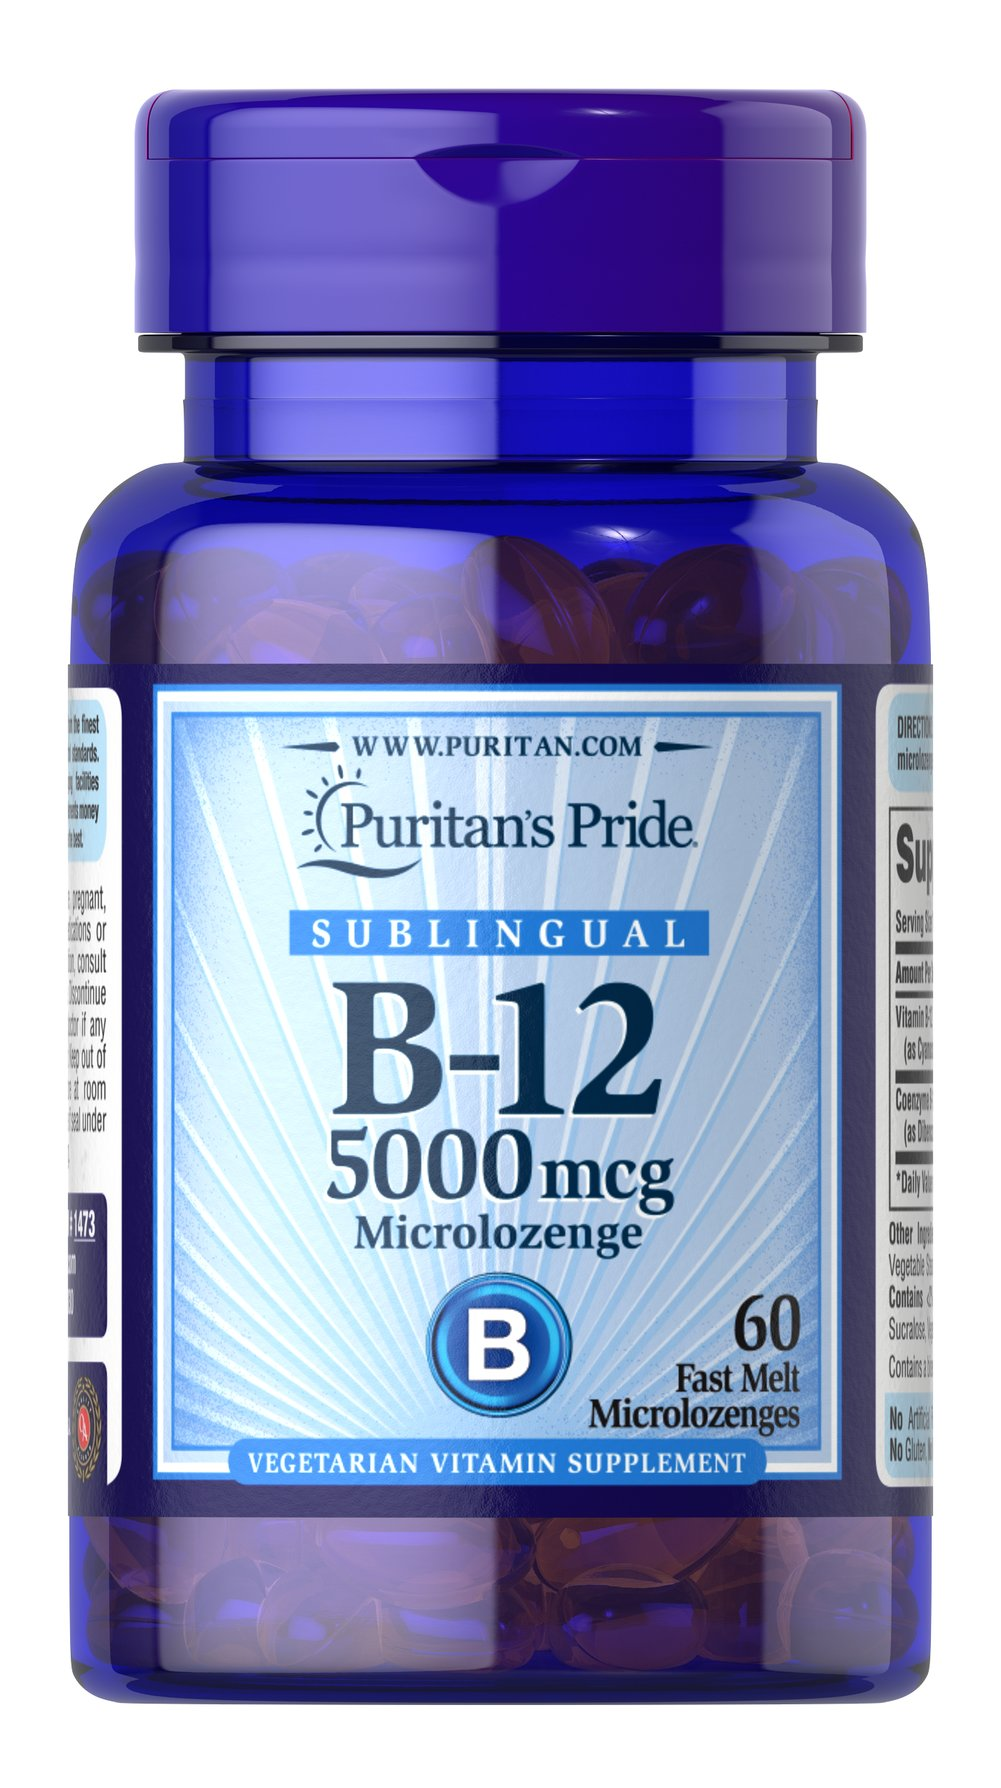 Vitamin B-12 5000 mcg Sublingual  60 Microlozenges 5000 mcg $21.99